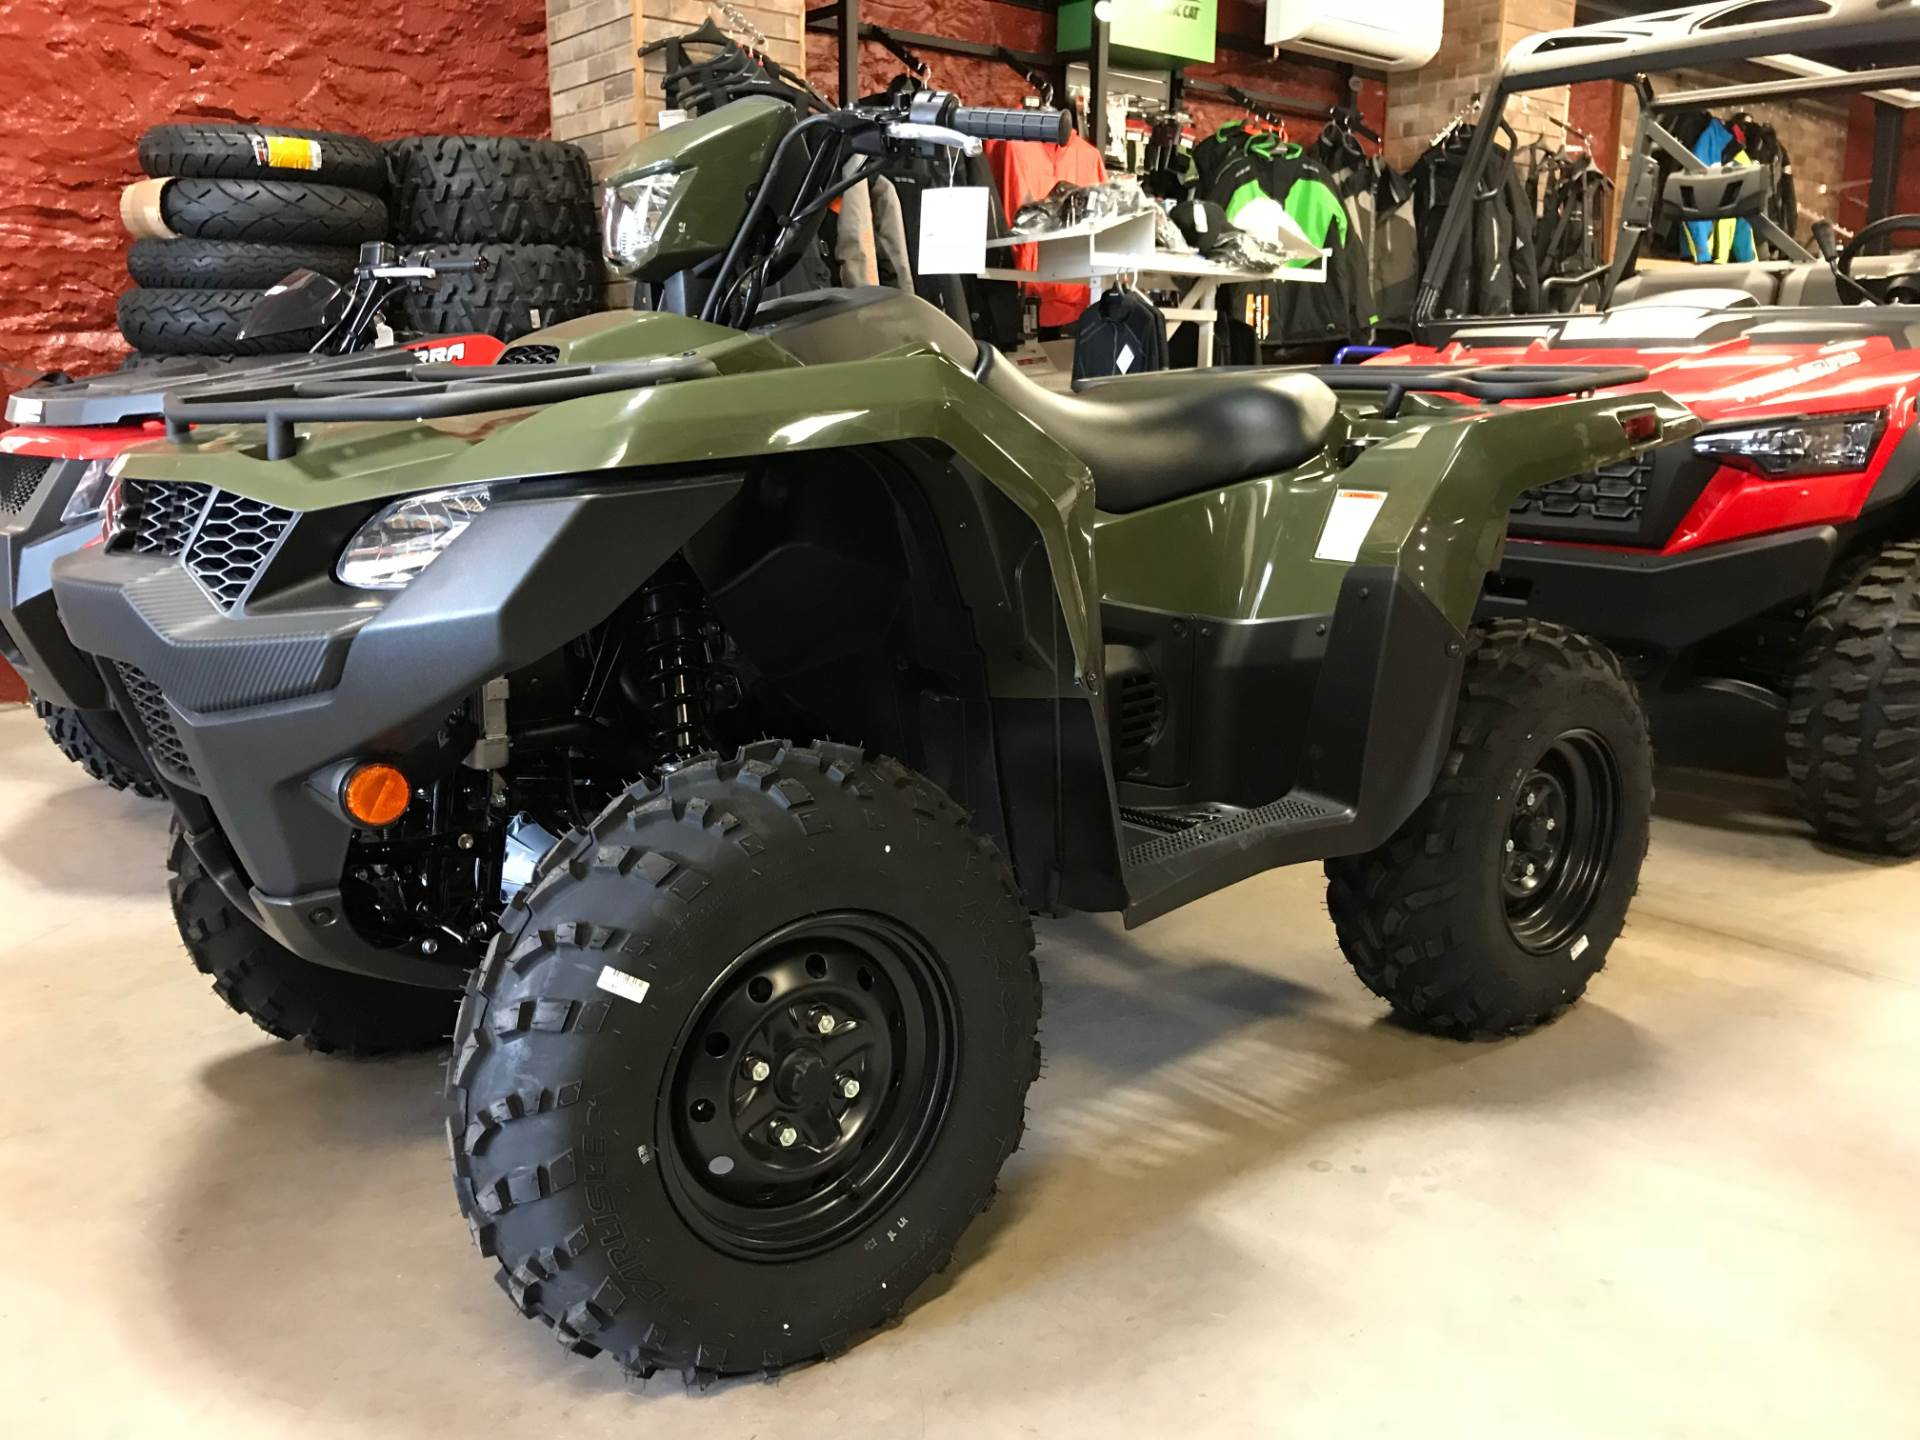 2019 Suzuki KingQuad 500AXi in Hancock, Michigan